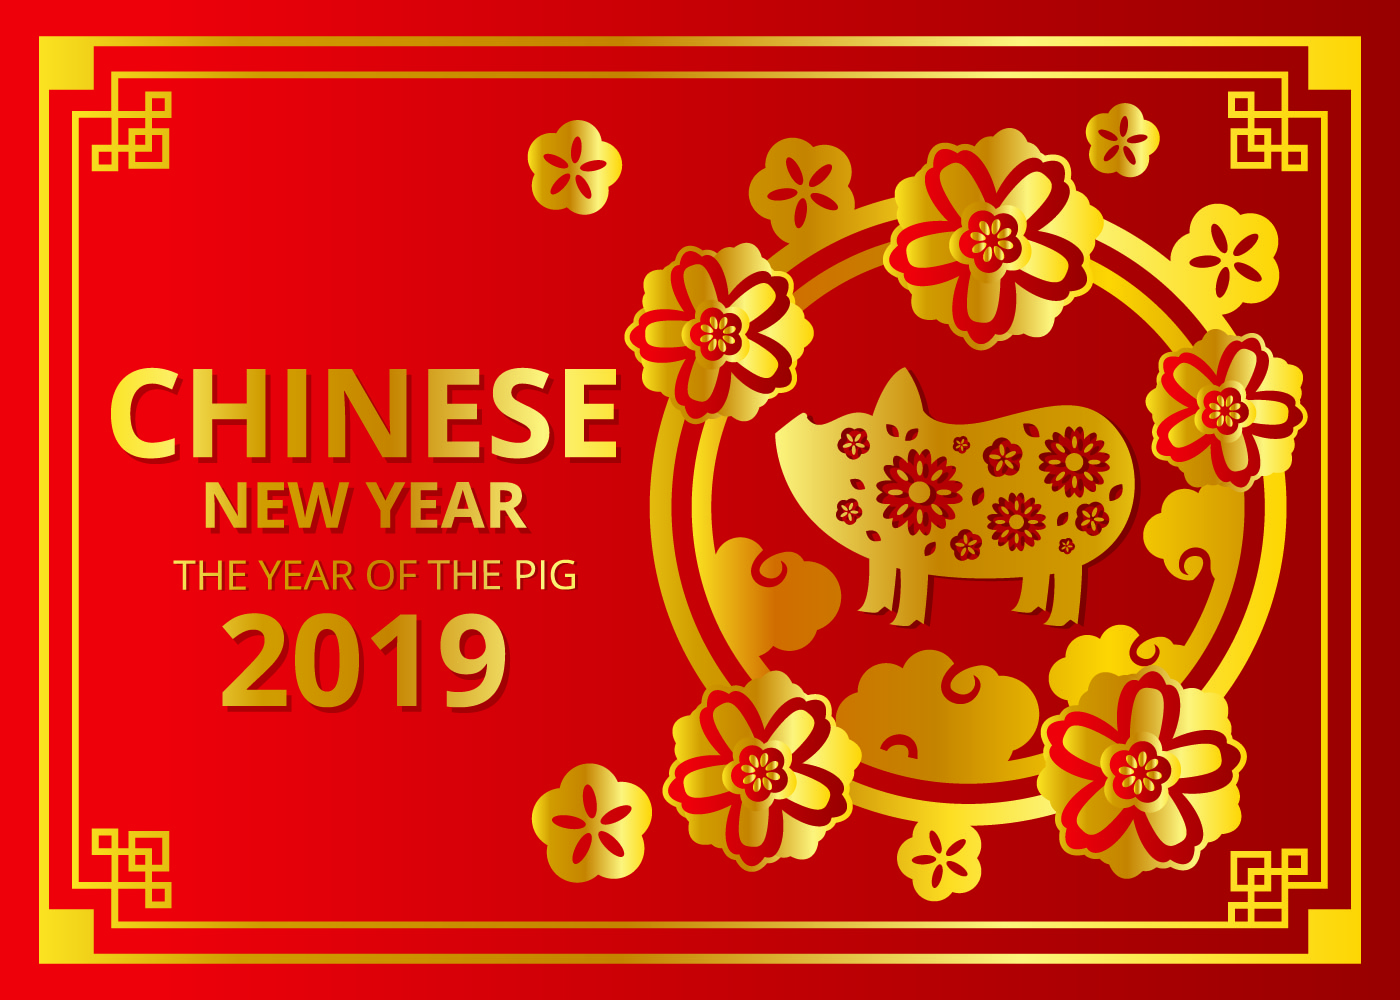 Chinese Dierenriem 2019 2019 Chinees Nieuwjaar Vector Download Gratis Vectorkunst En